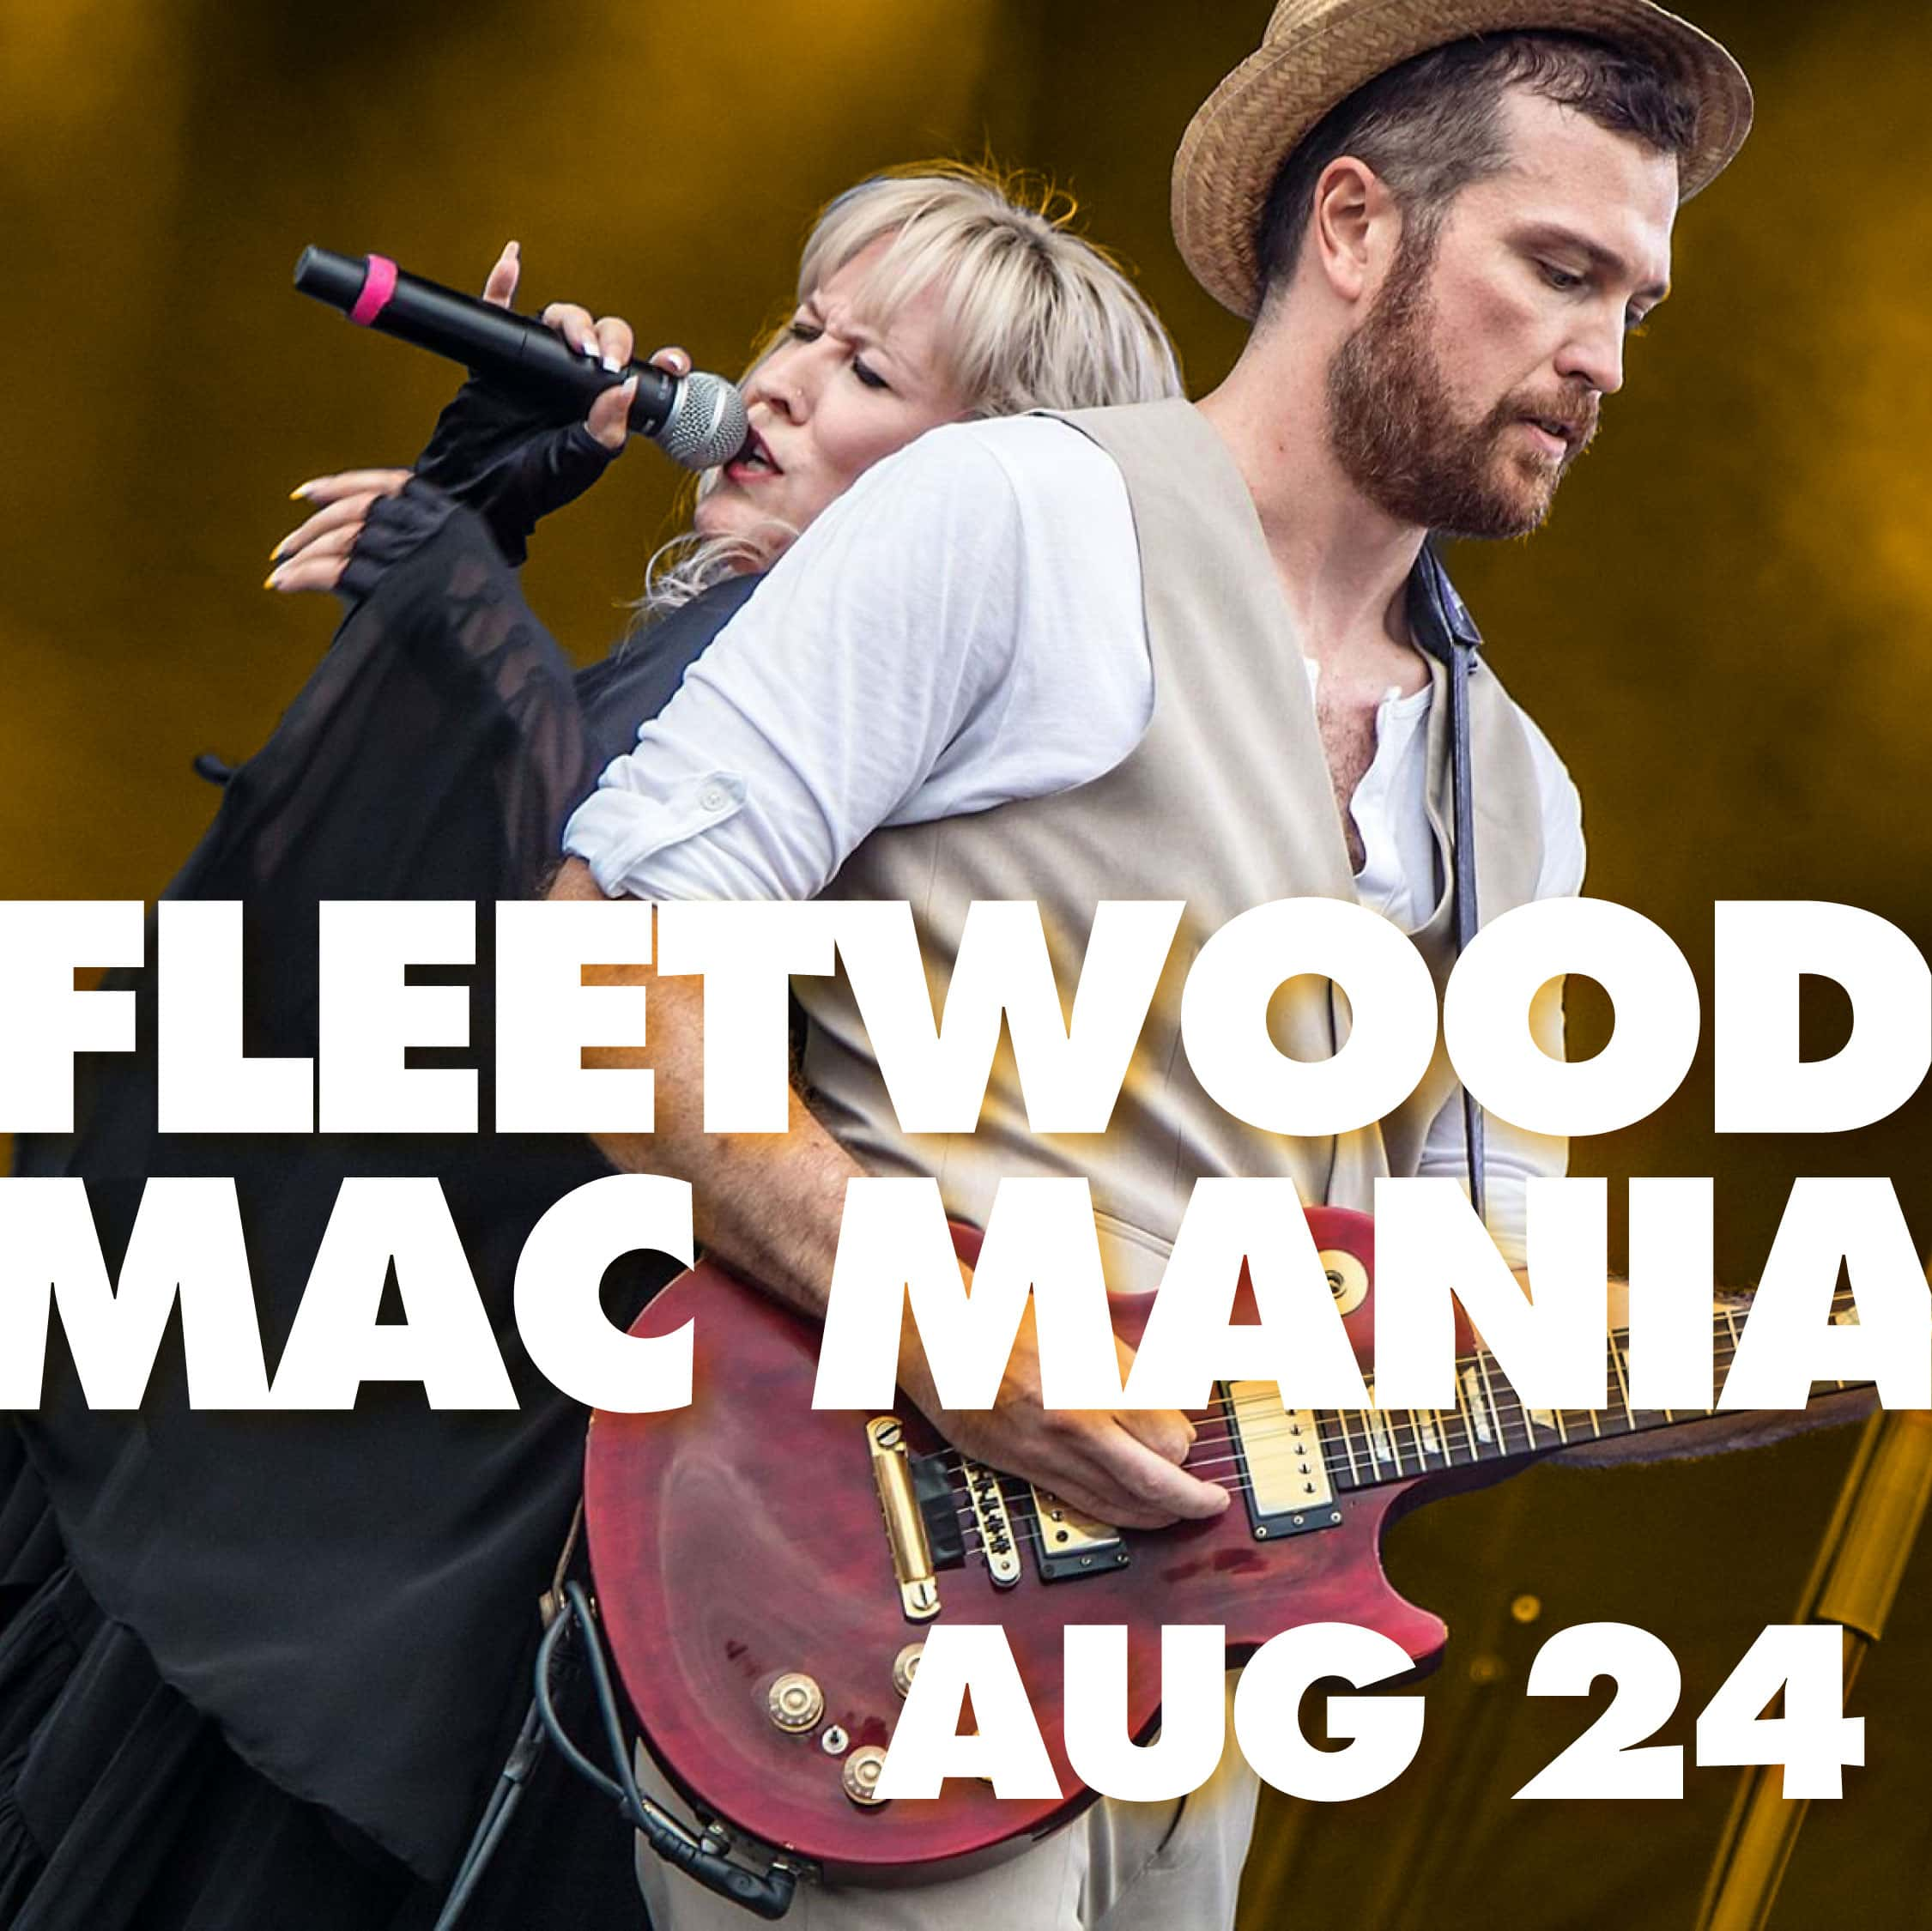 Enjoy an Evening with  Fleetwood Mac Mania